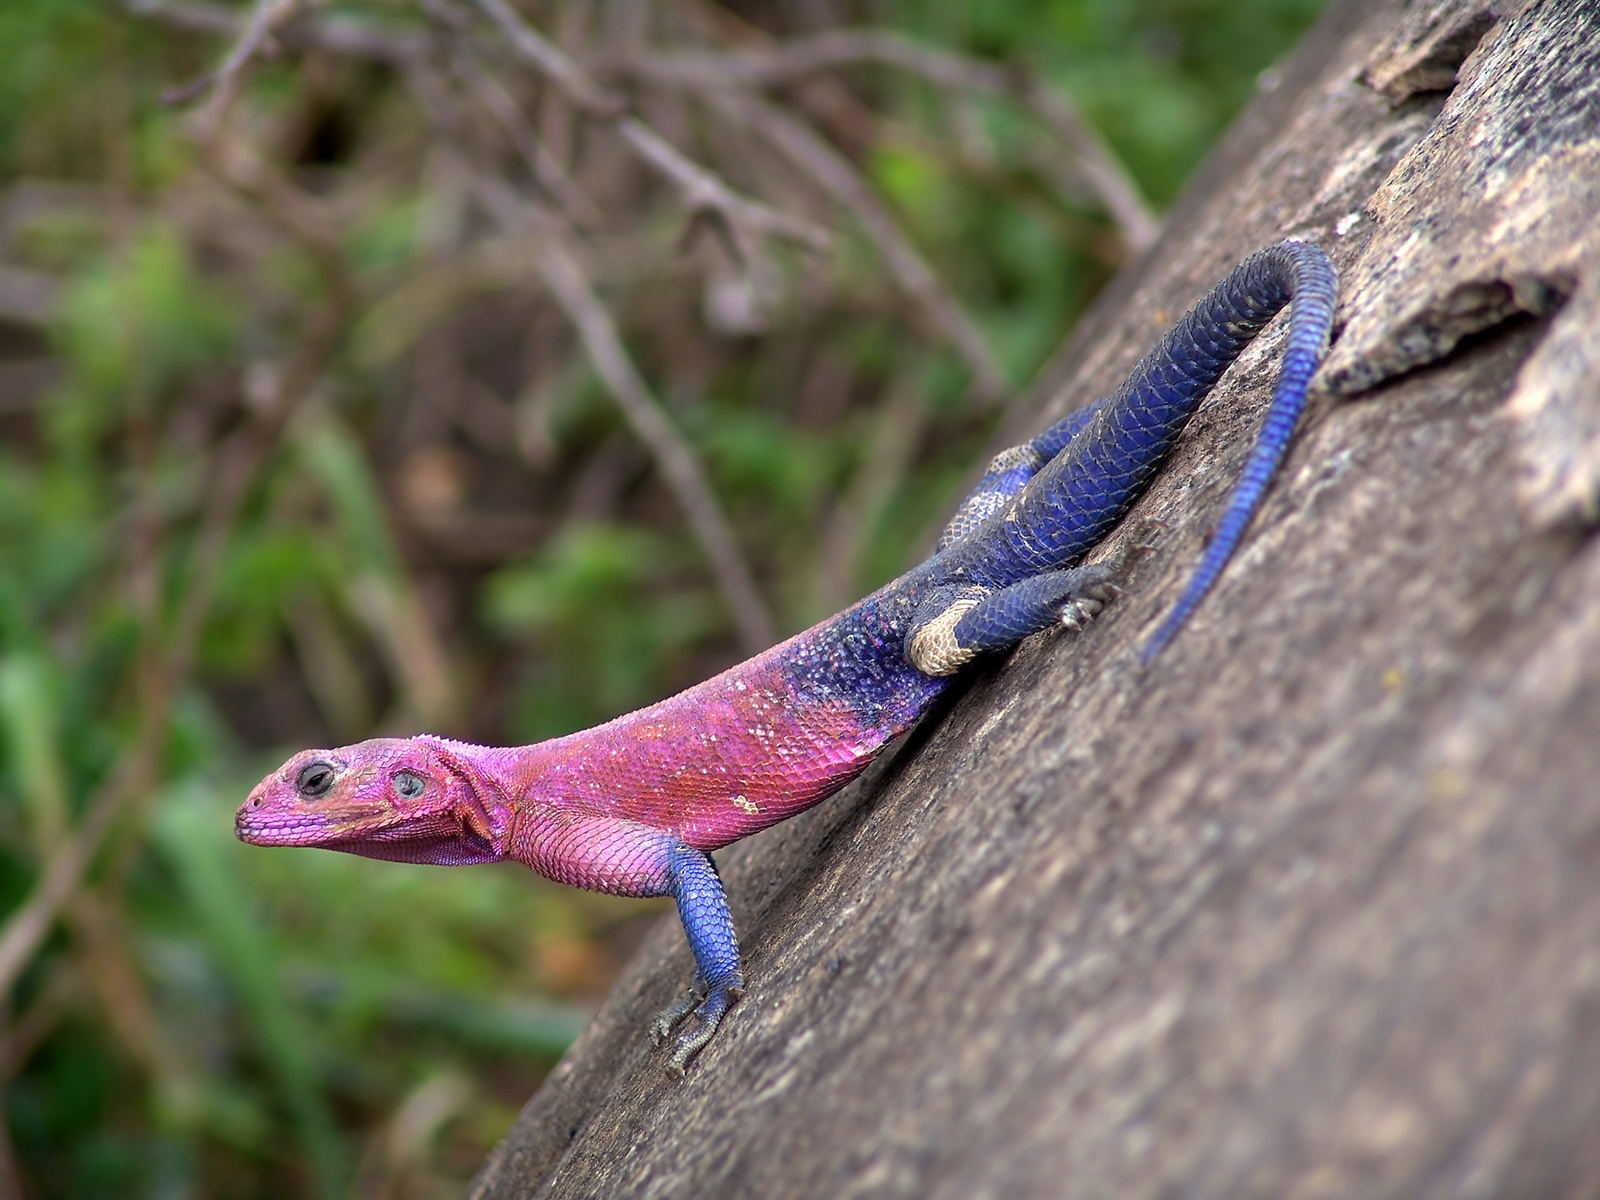 Flat Headed Rock Agama lizards 28572033 1600 1200 600x450 lizards